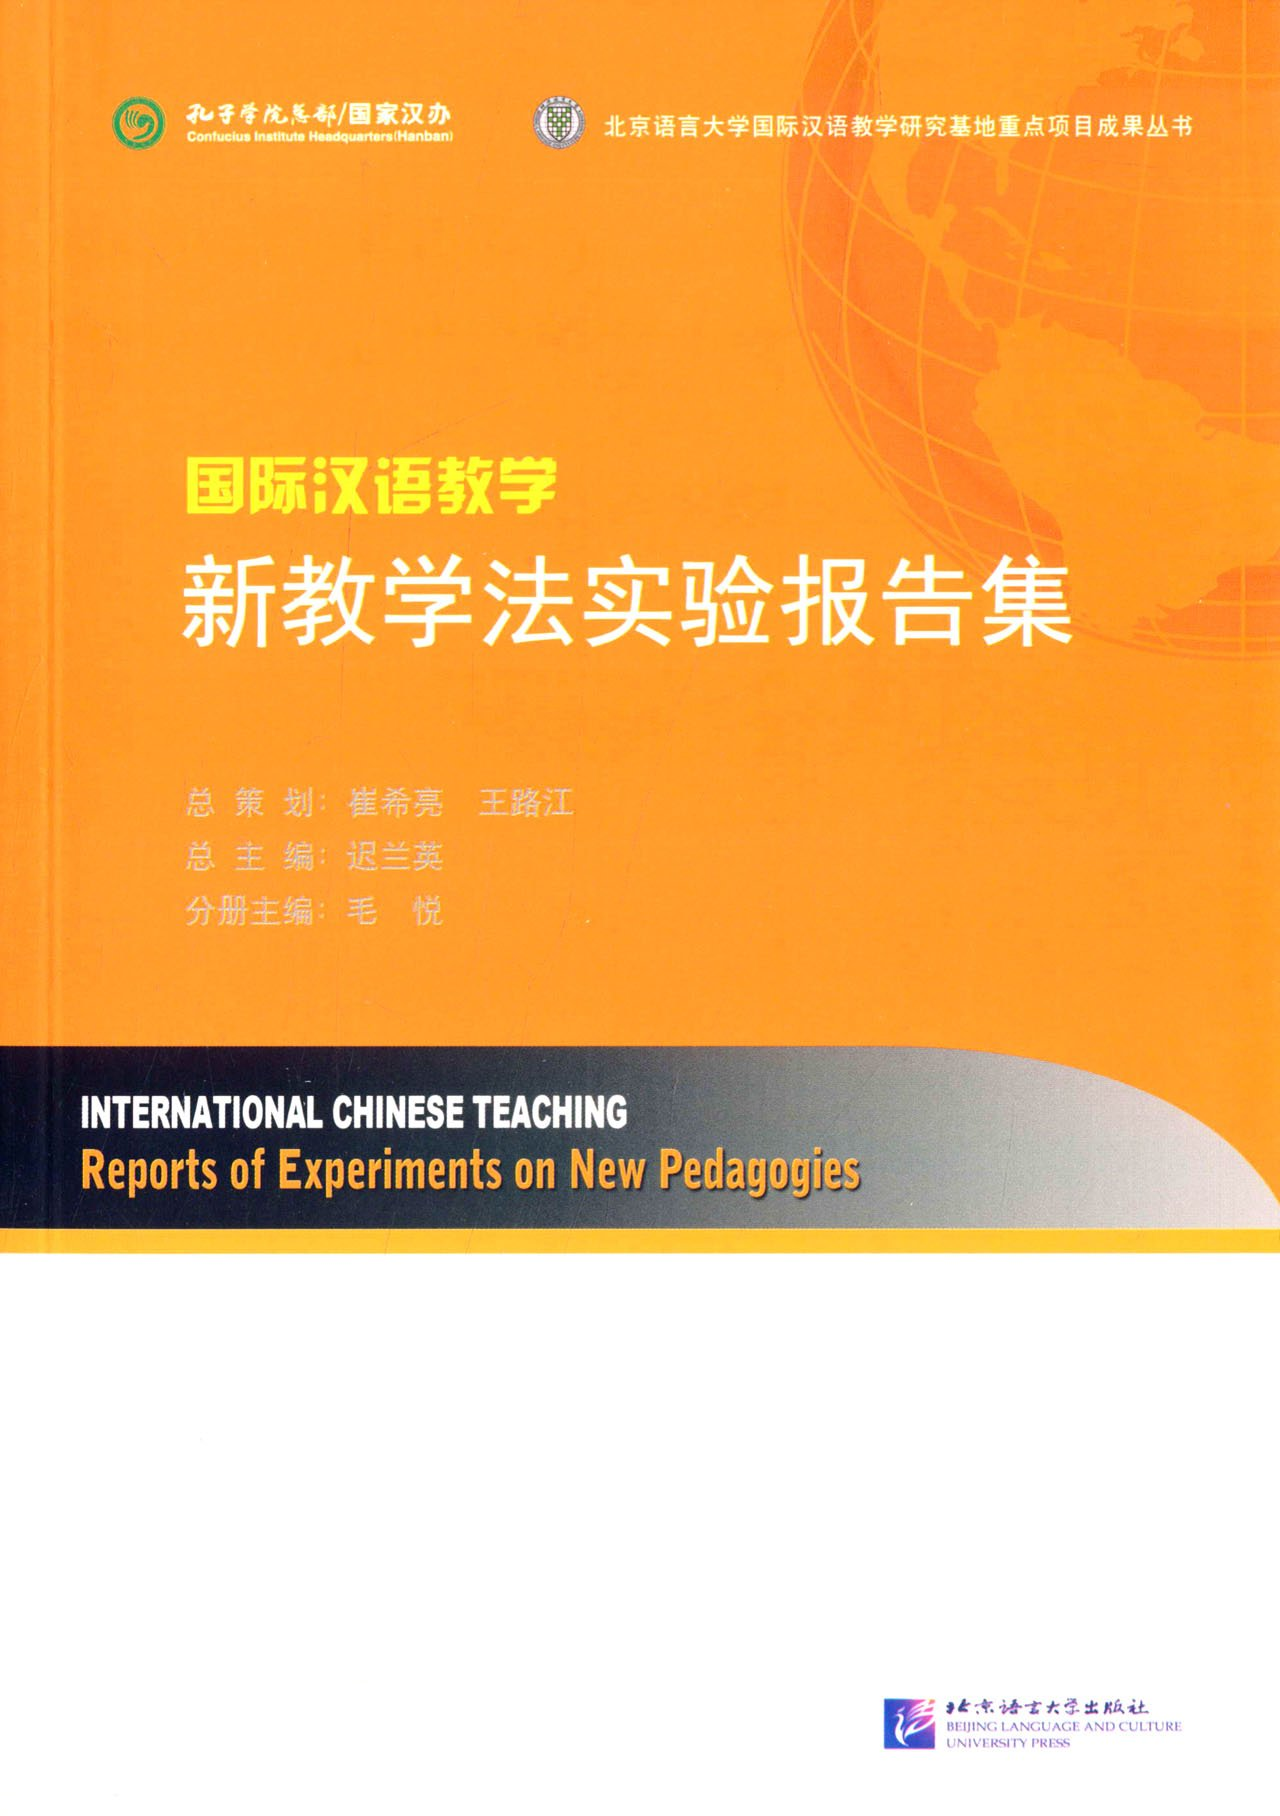 International Chinese Teaching Reports of Experiments on New Pedagogies